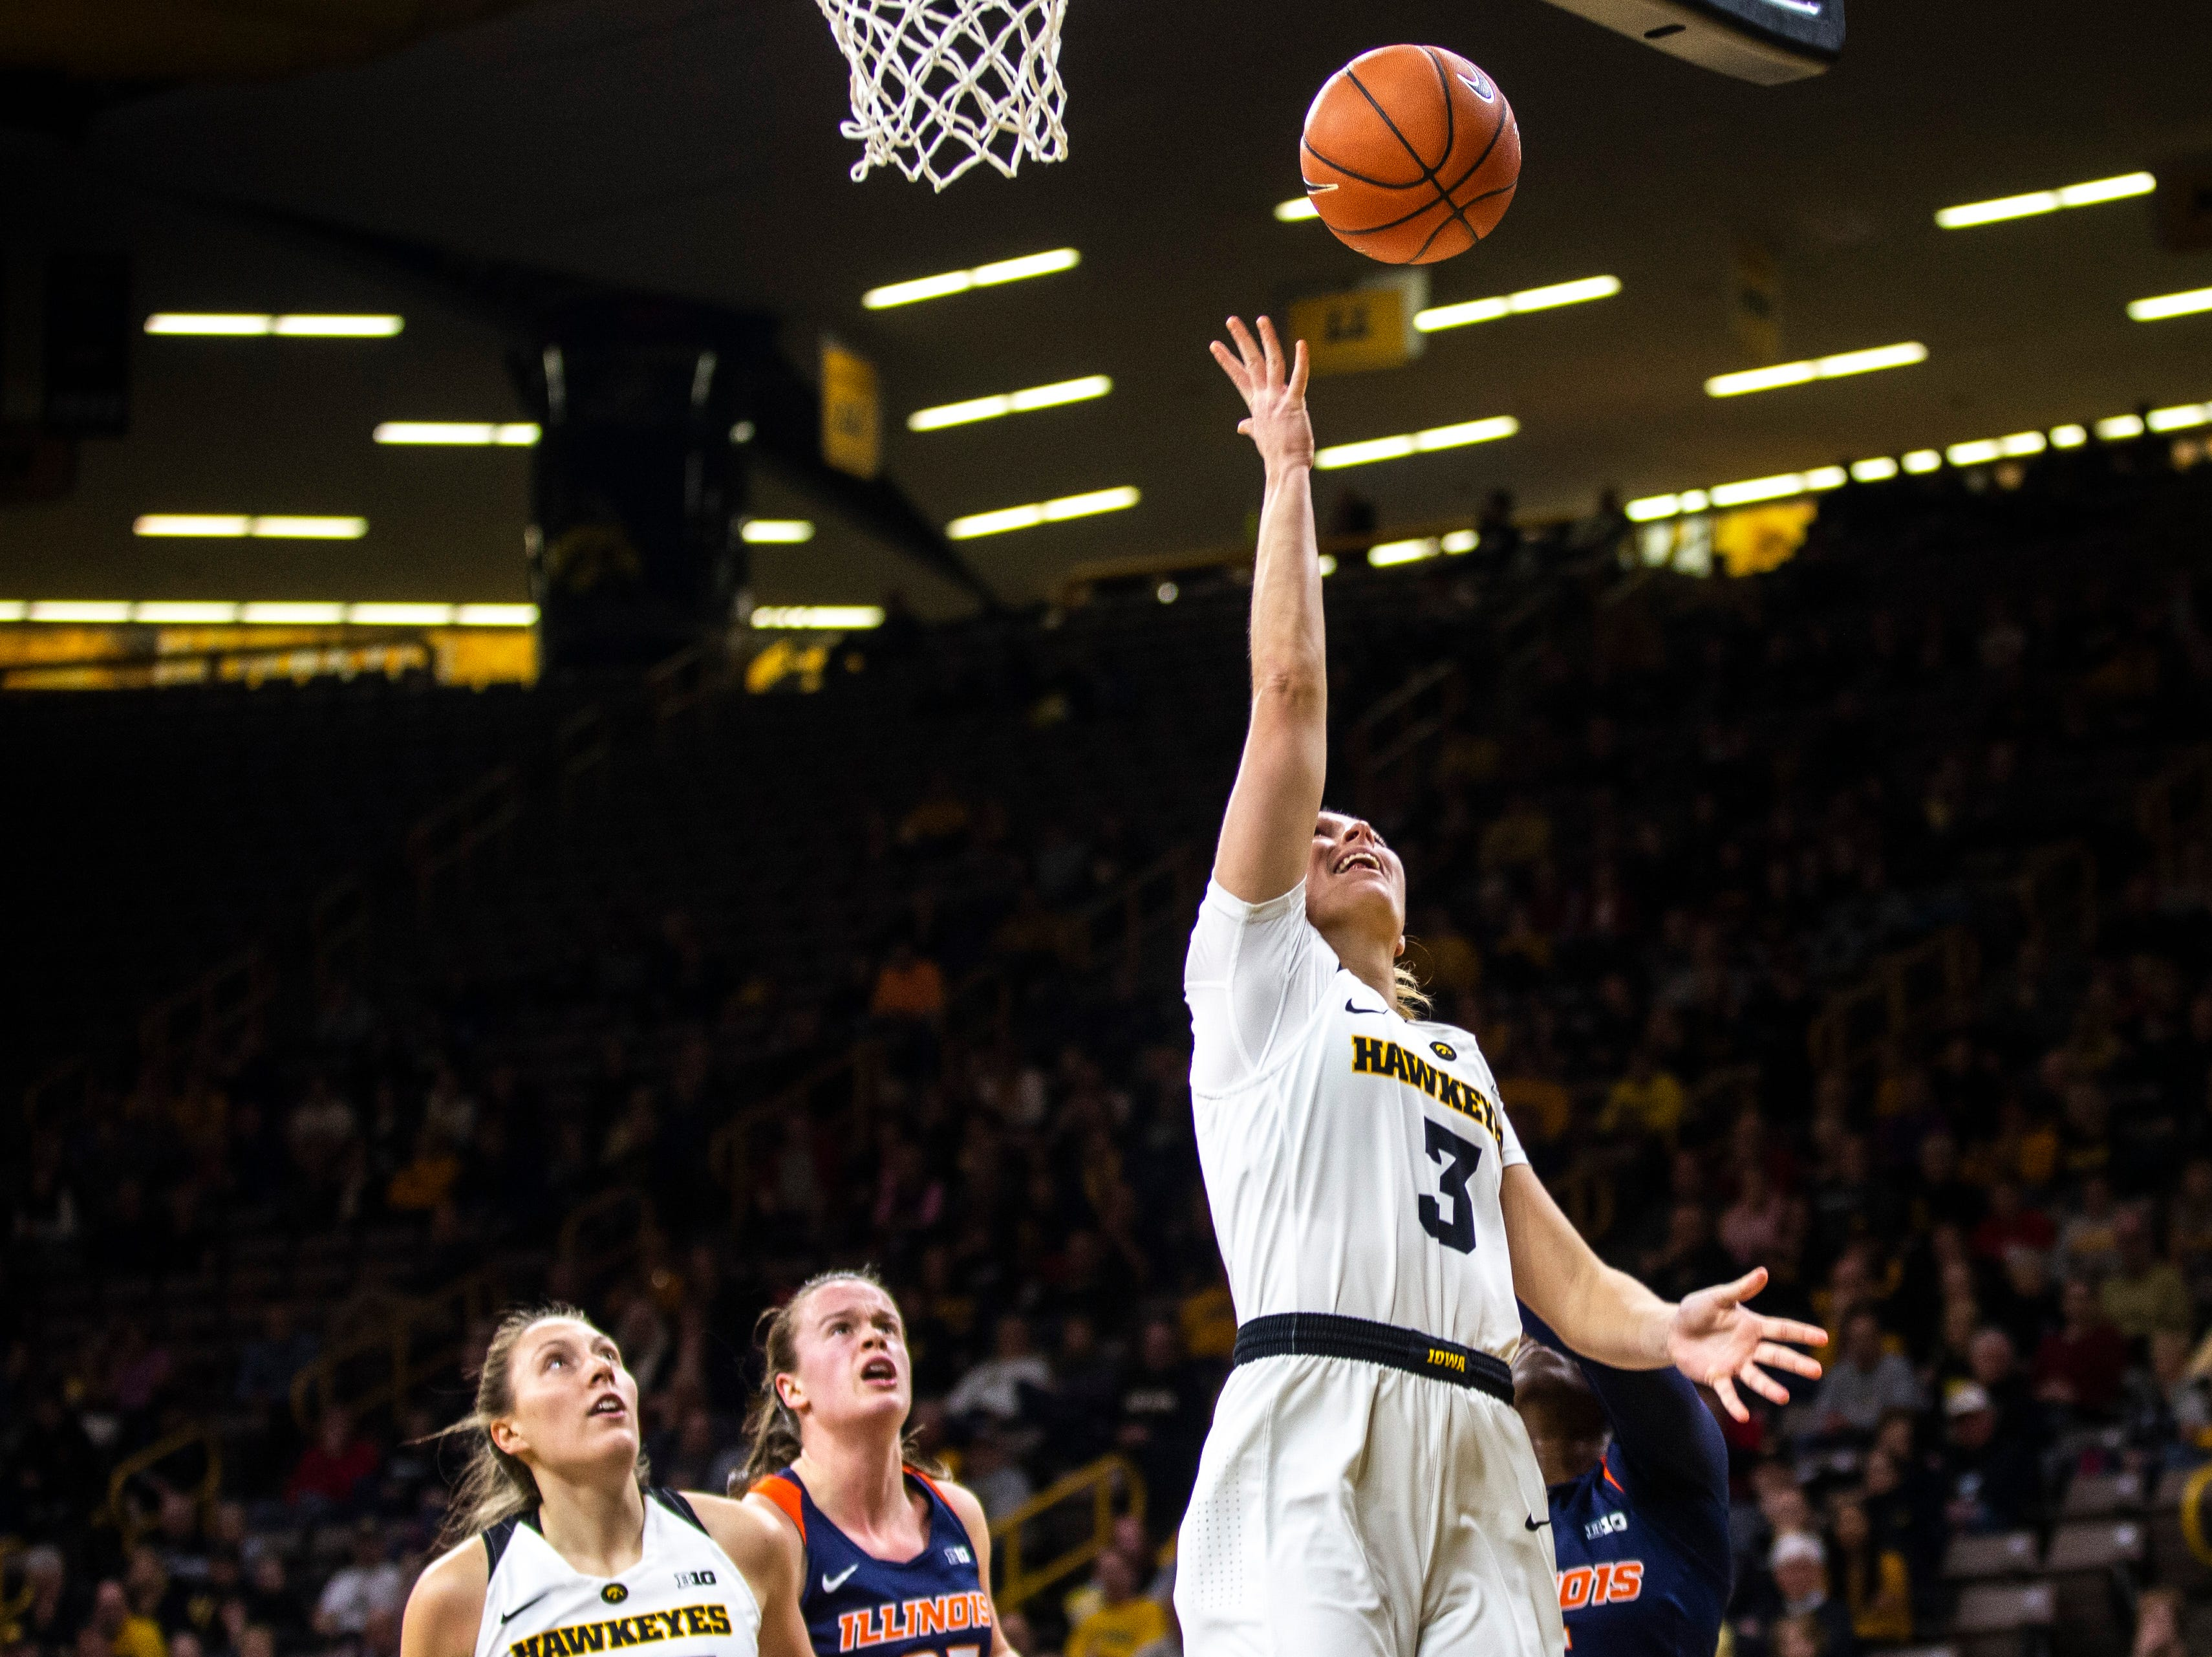 Iowa guard Makenzie Meyer (3) attempts a layup during a NCAA Big Ten Conference women's basketball game on Thursday, Feb. 14, 2019 at Carver-Hawkeye Arena in Iowa City, Iowa.